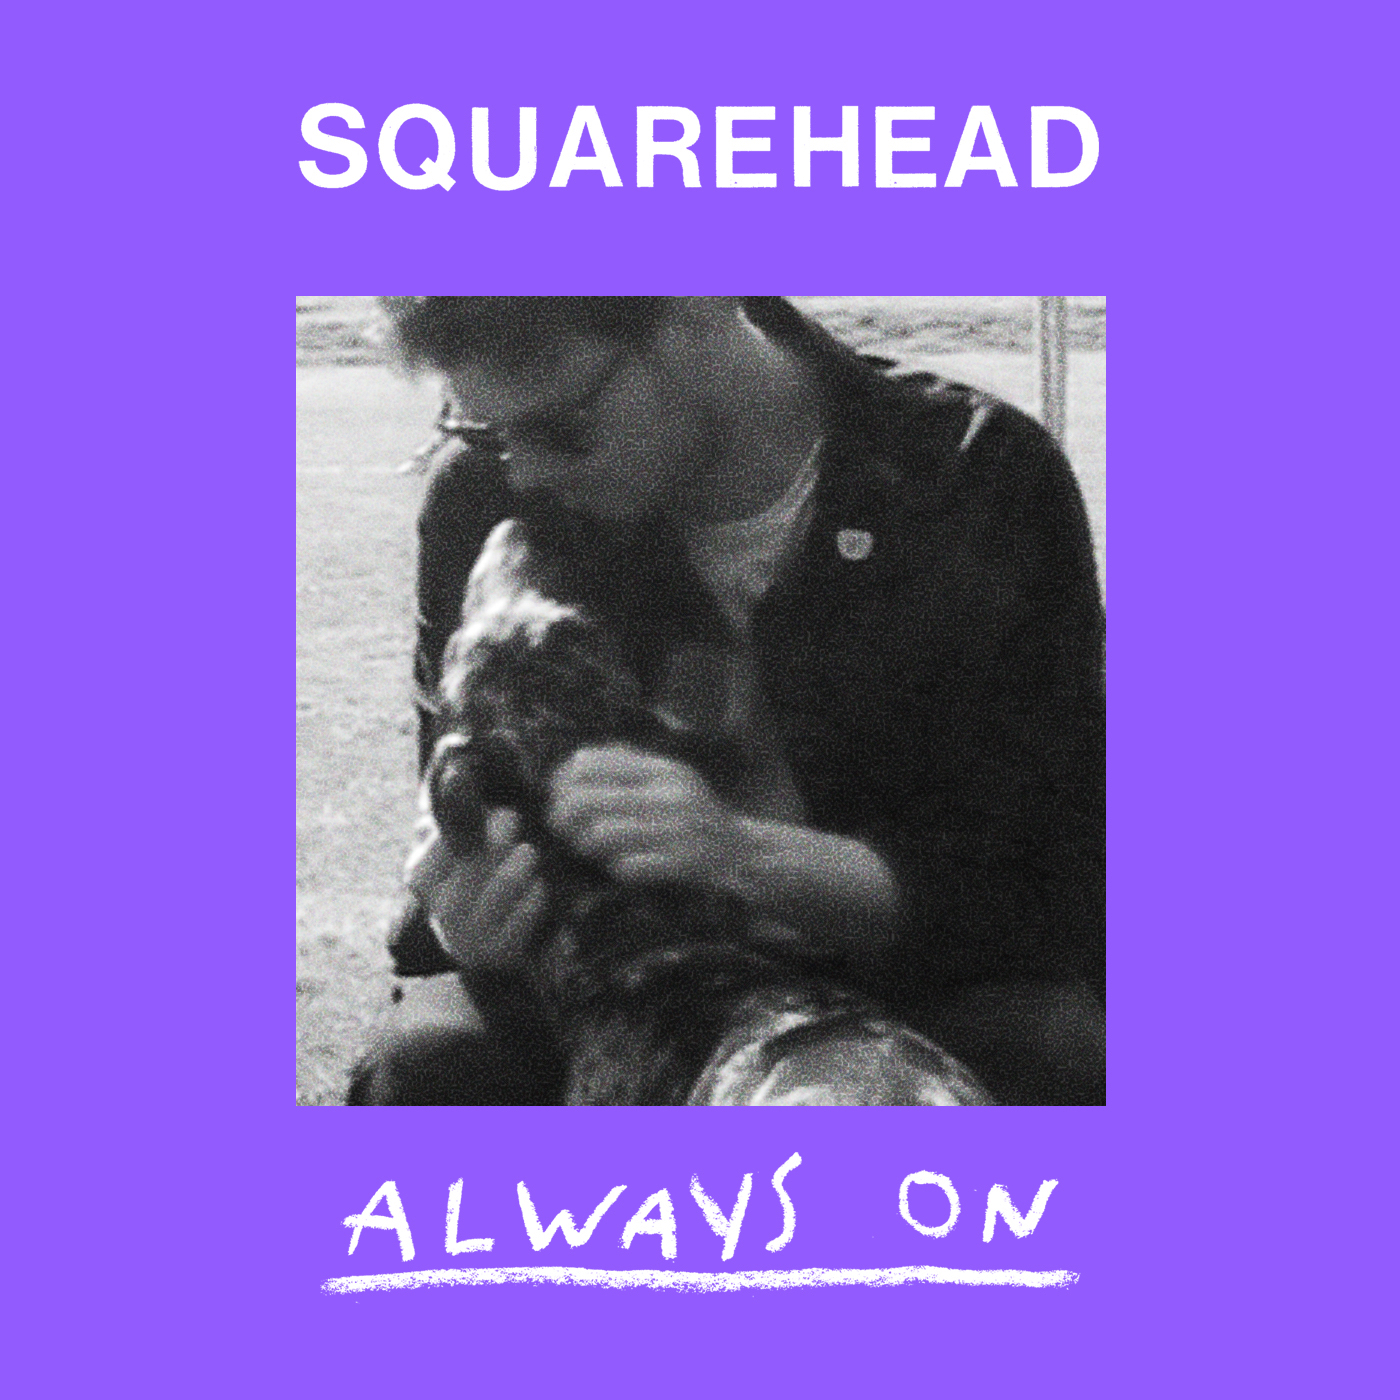 ALWAYS ON - The new single from Squarehead, out 30th November.